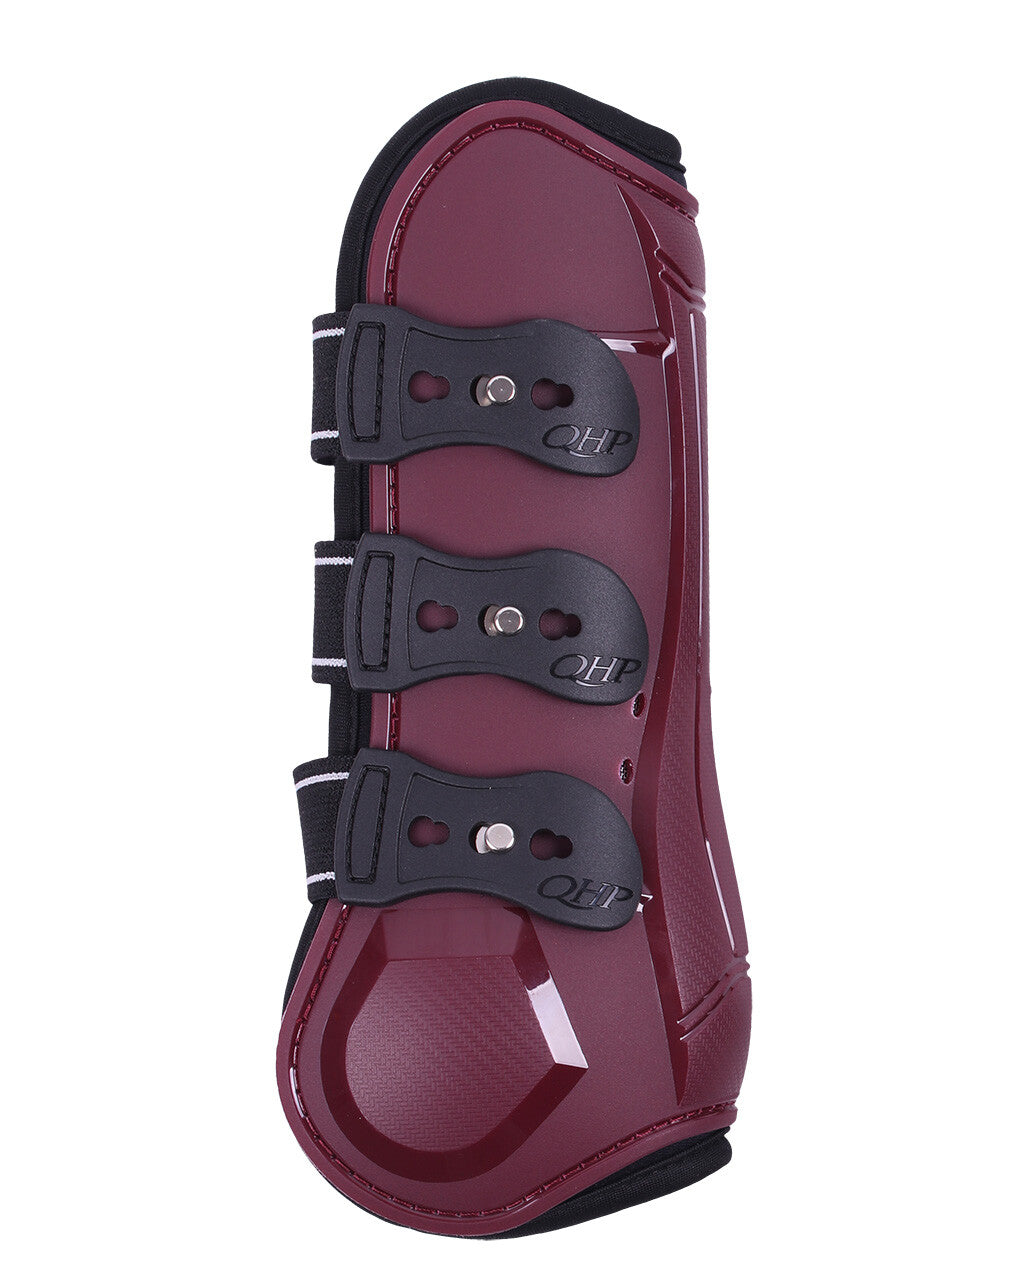 QHP Champion Tendon Boot set